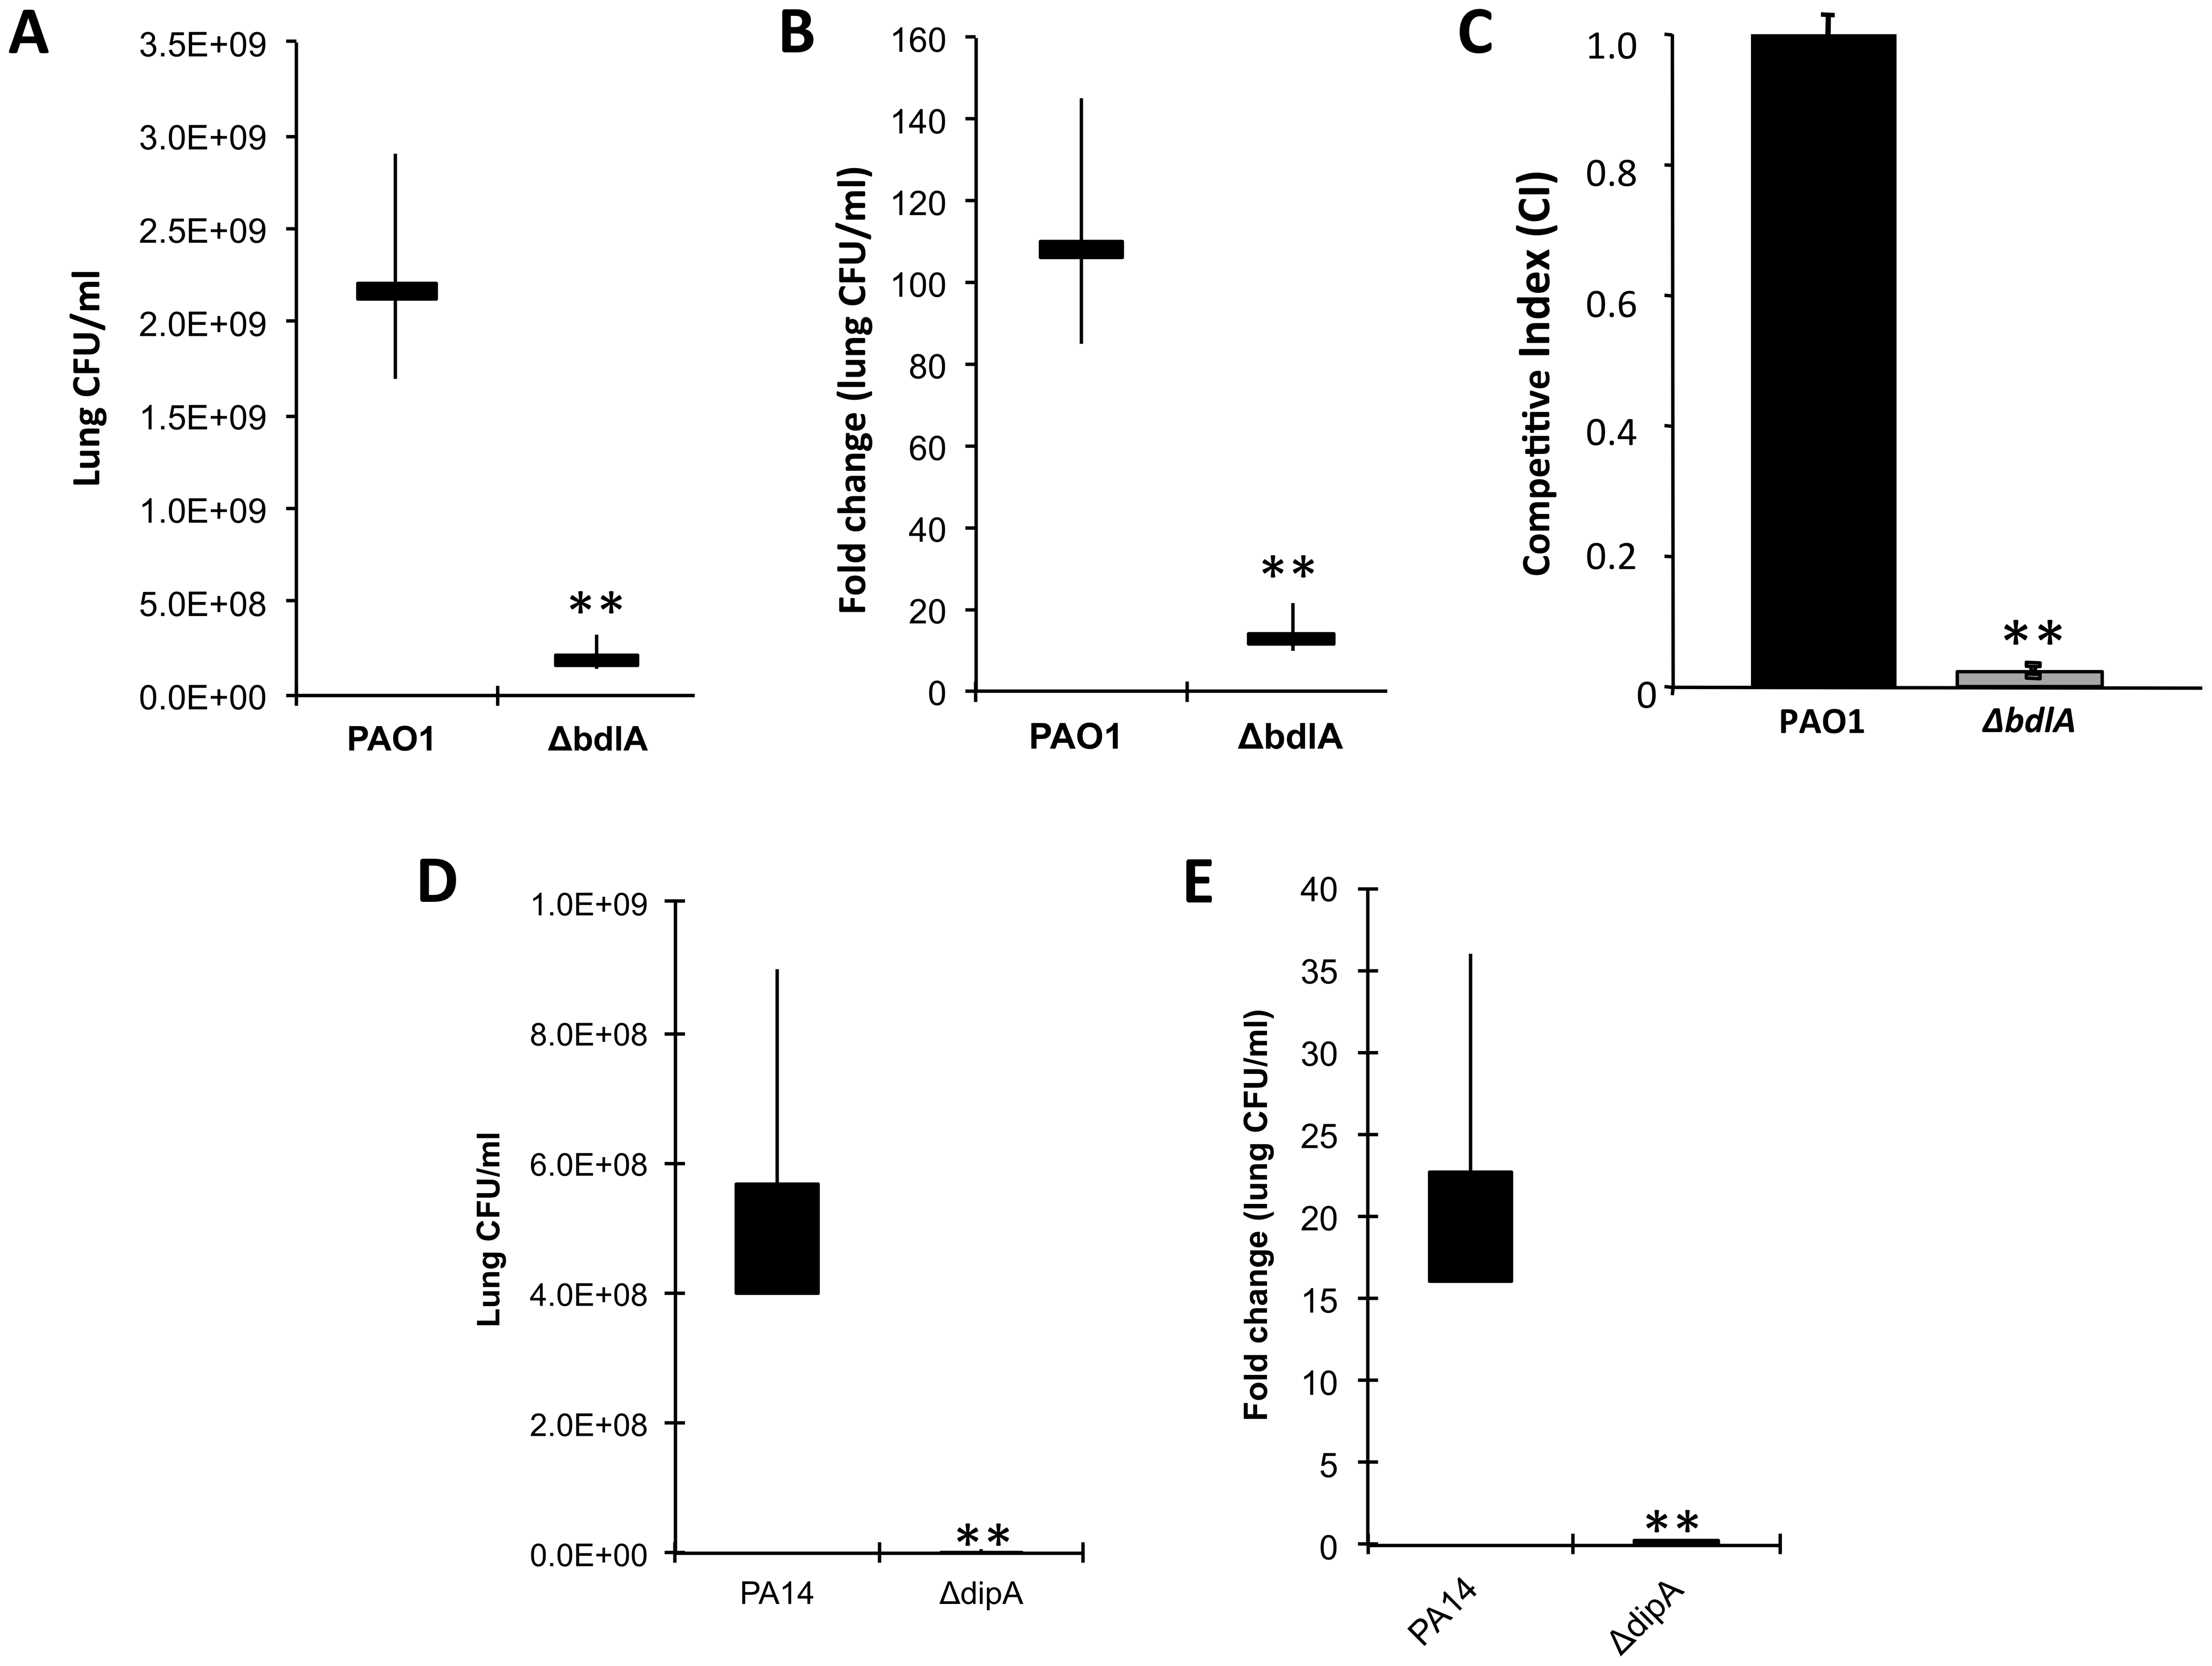 The non-dispersing <i>P. aeruginosa ΔbdlA</i> and <i>ΔdipA</i> mutant strains are less virulent and competitive compared to <i>P. aeruginosa</i> wild type as determined using an acute murine pneumonia infection model.